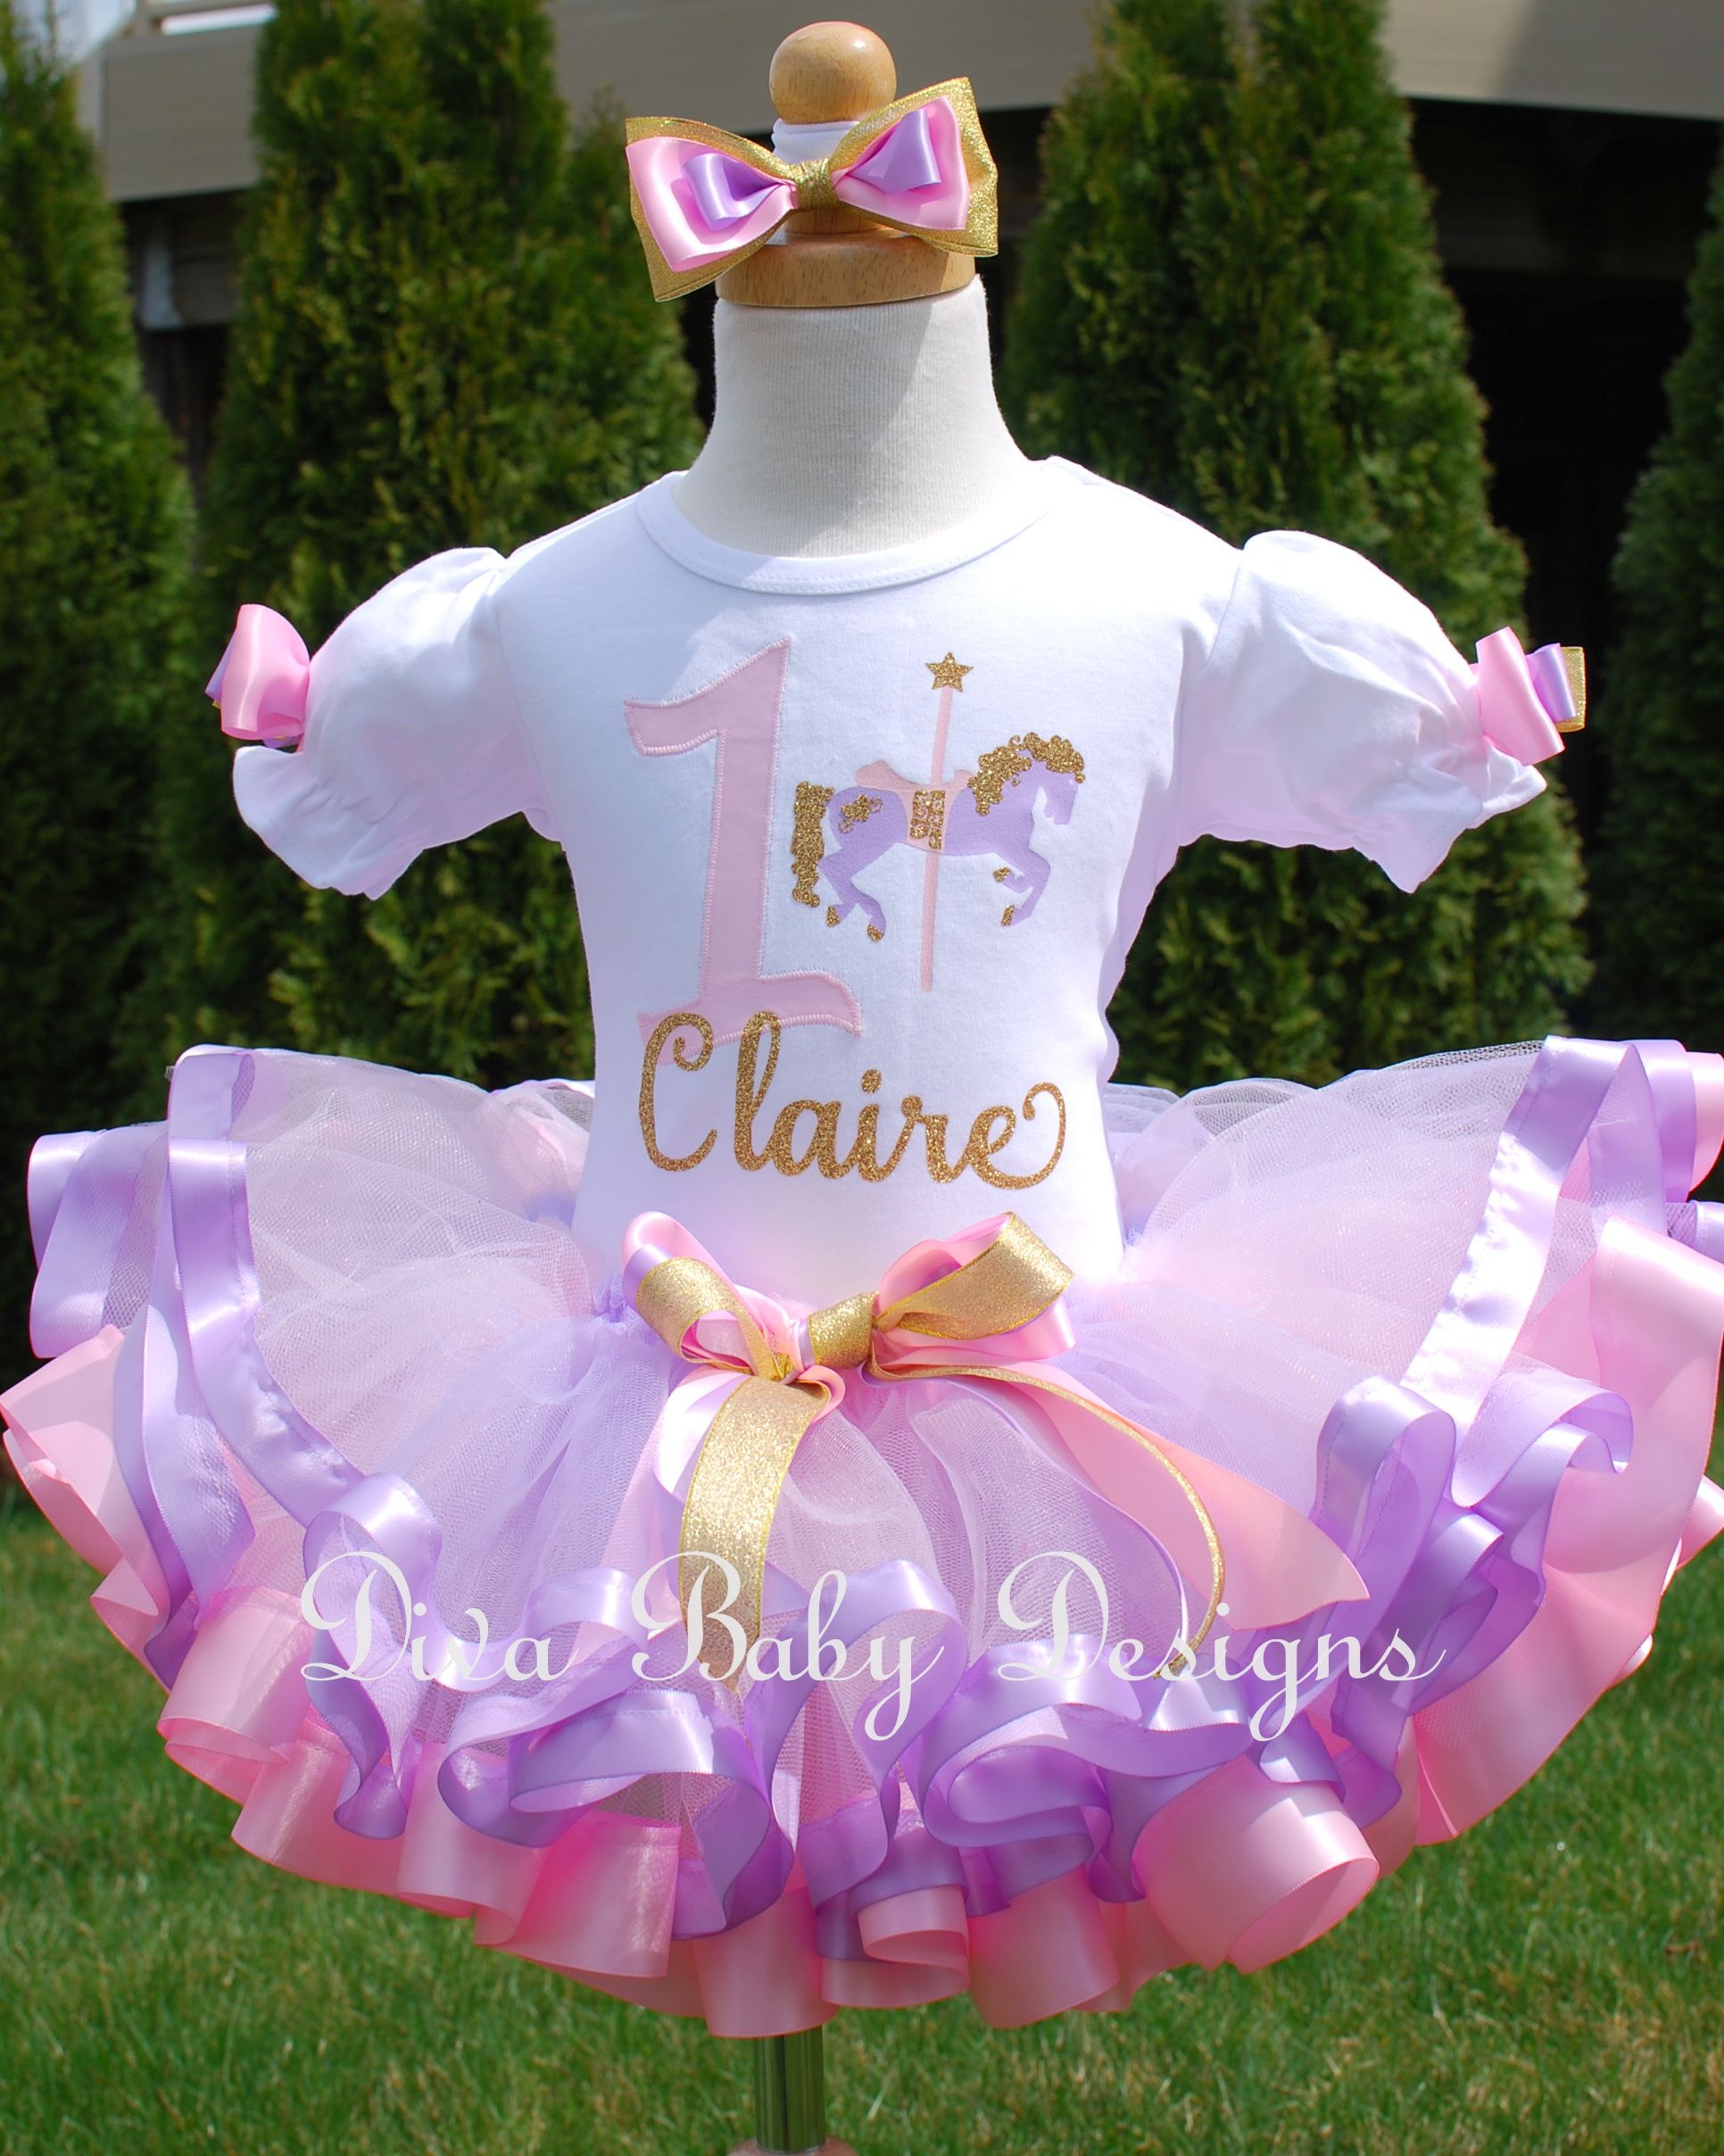 e54fccf804c9 Pink/Lavender Carousel Horse Birthday Tutu Outfit in 2019 | Birthday ...